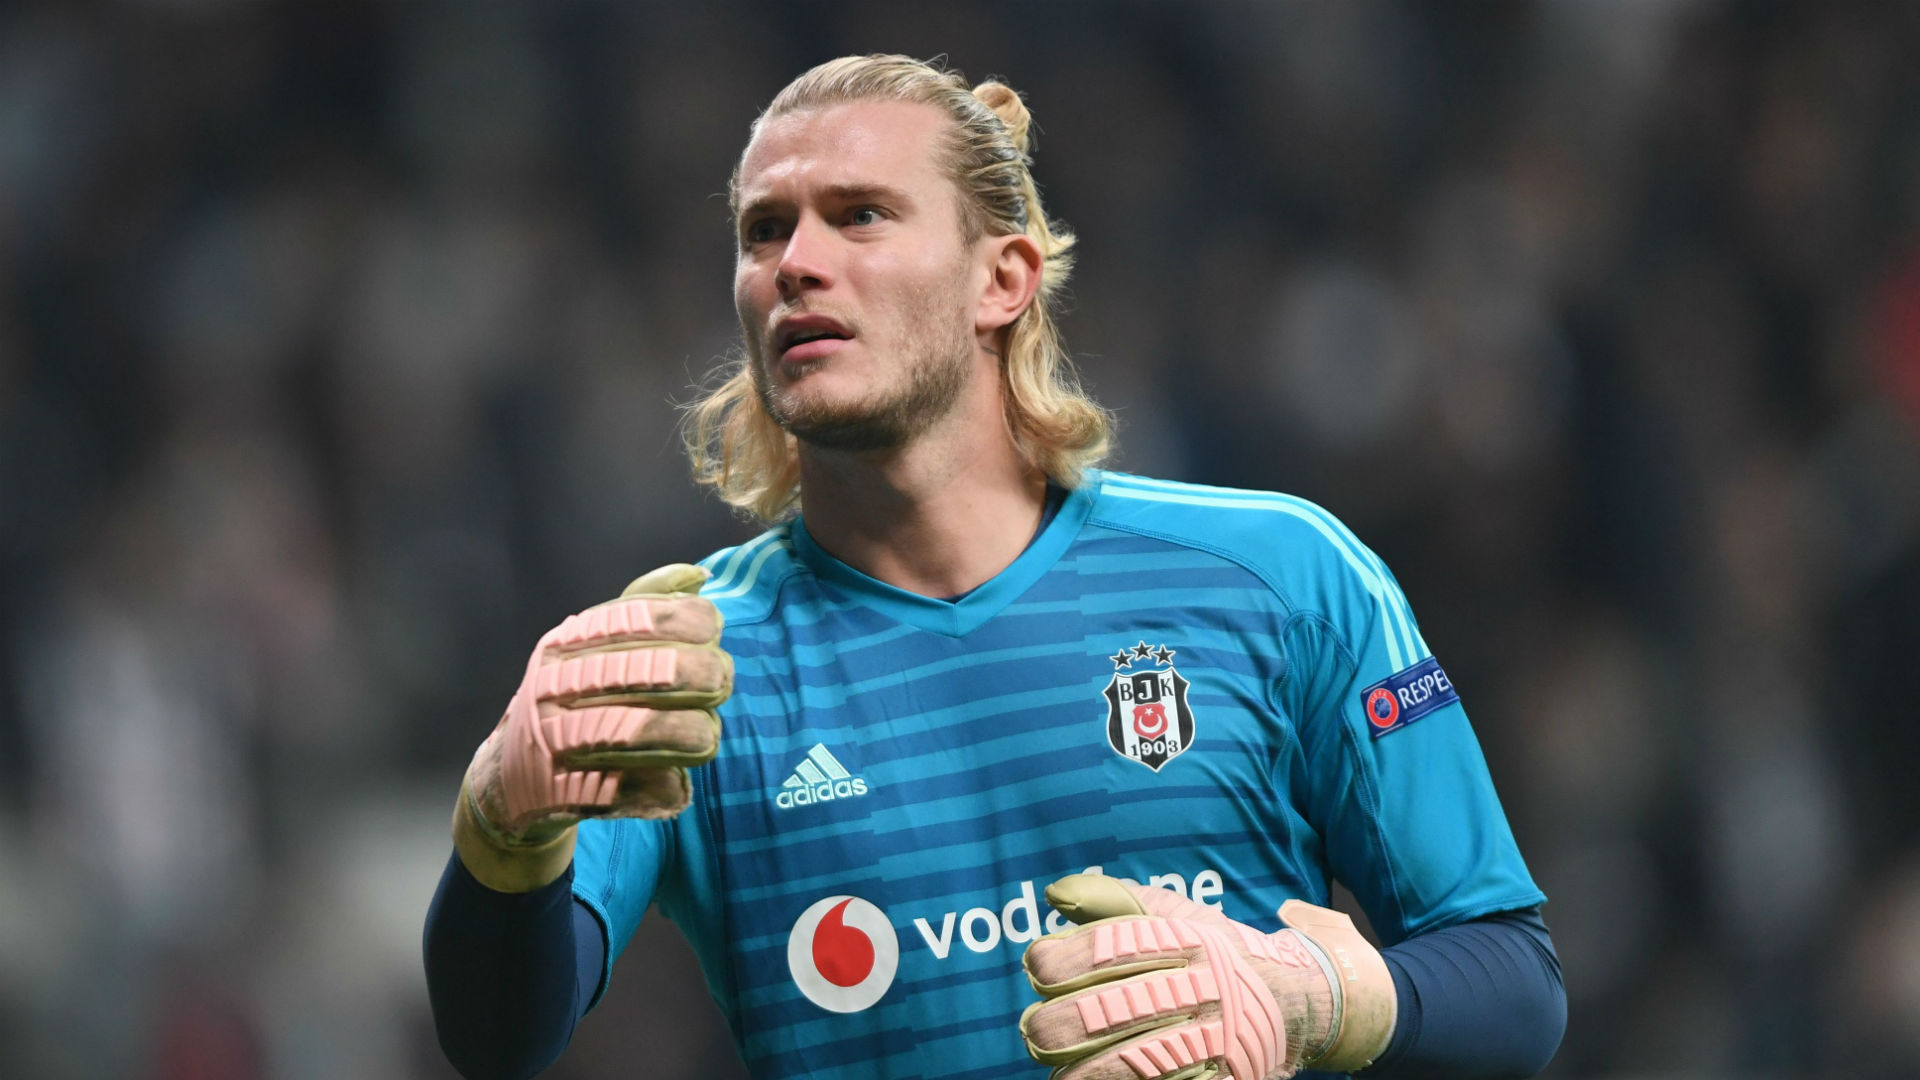 The truth behind claims of Besiktas sending Loris Karius back to Liverpool